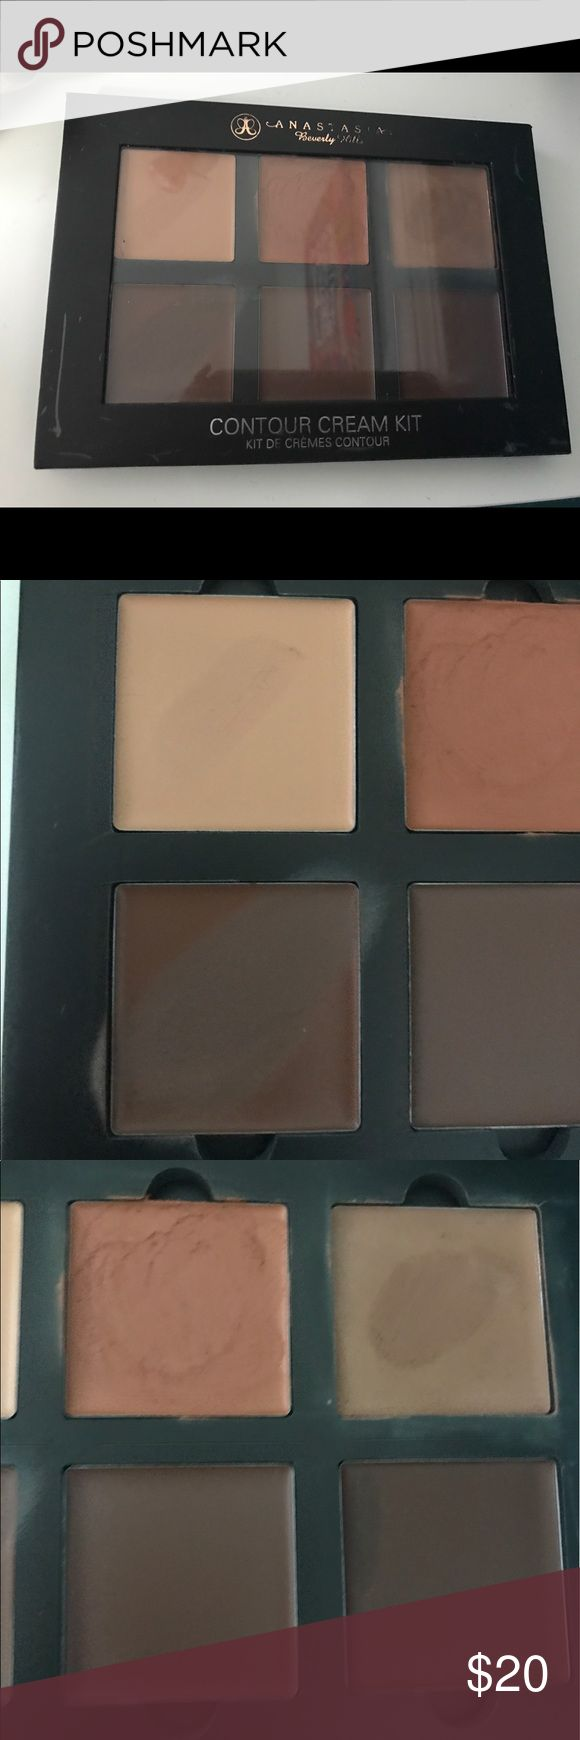 Anastasia Beverly Hills contour cream kit Anastasia Beverly Hills contour cream kit deep. Used 4 out of 6 colors. Coral has been used more than the other colors. Anastasia Beverly Hills Makeup Concealer